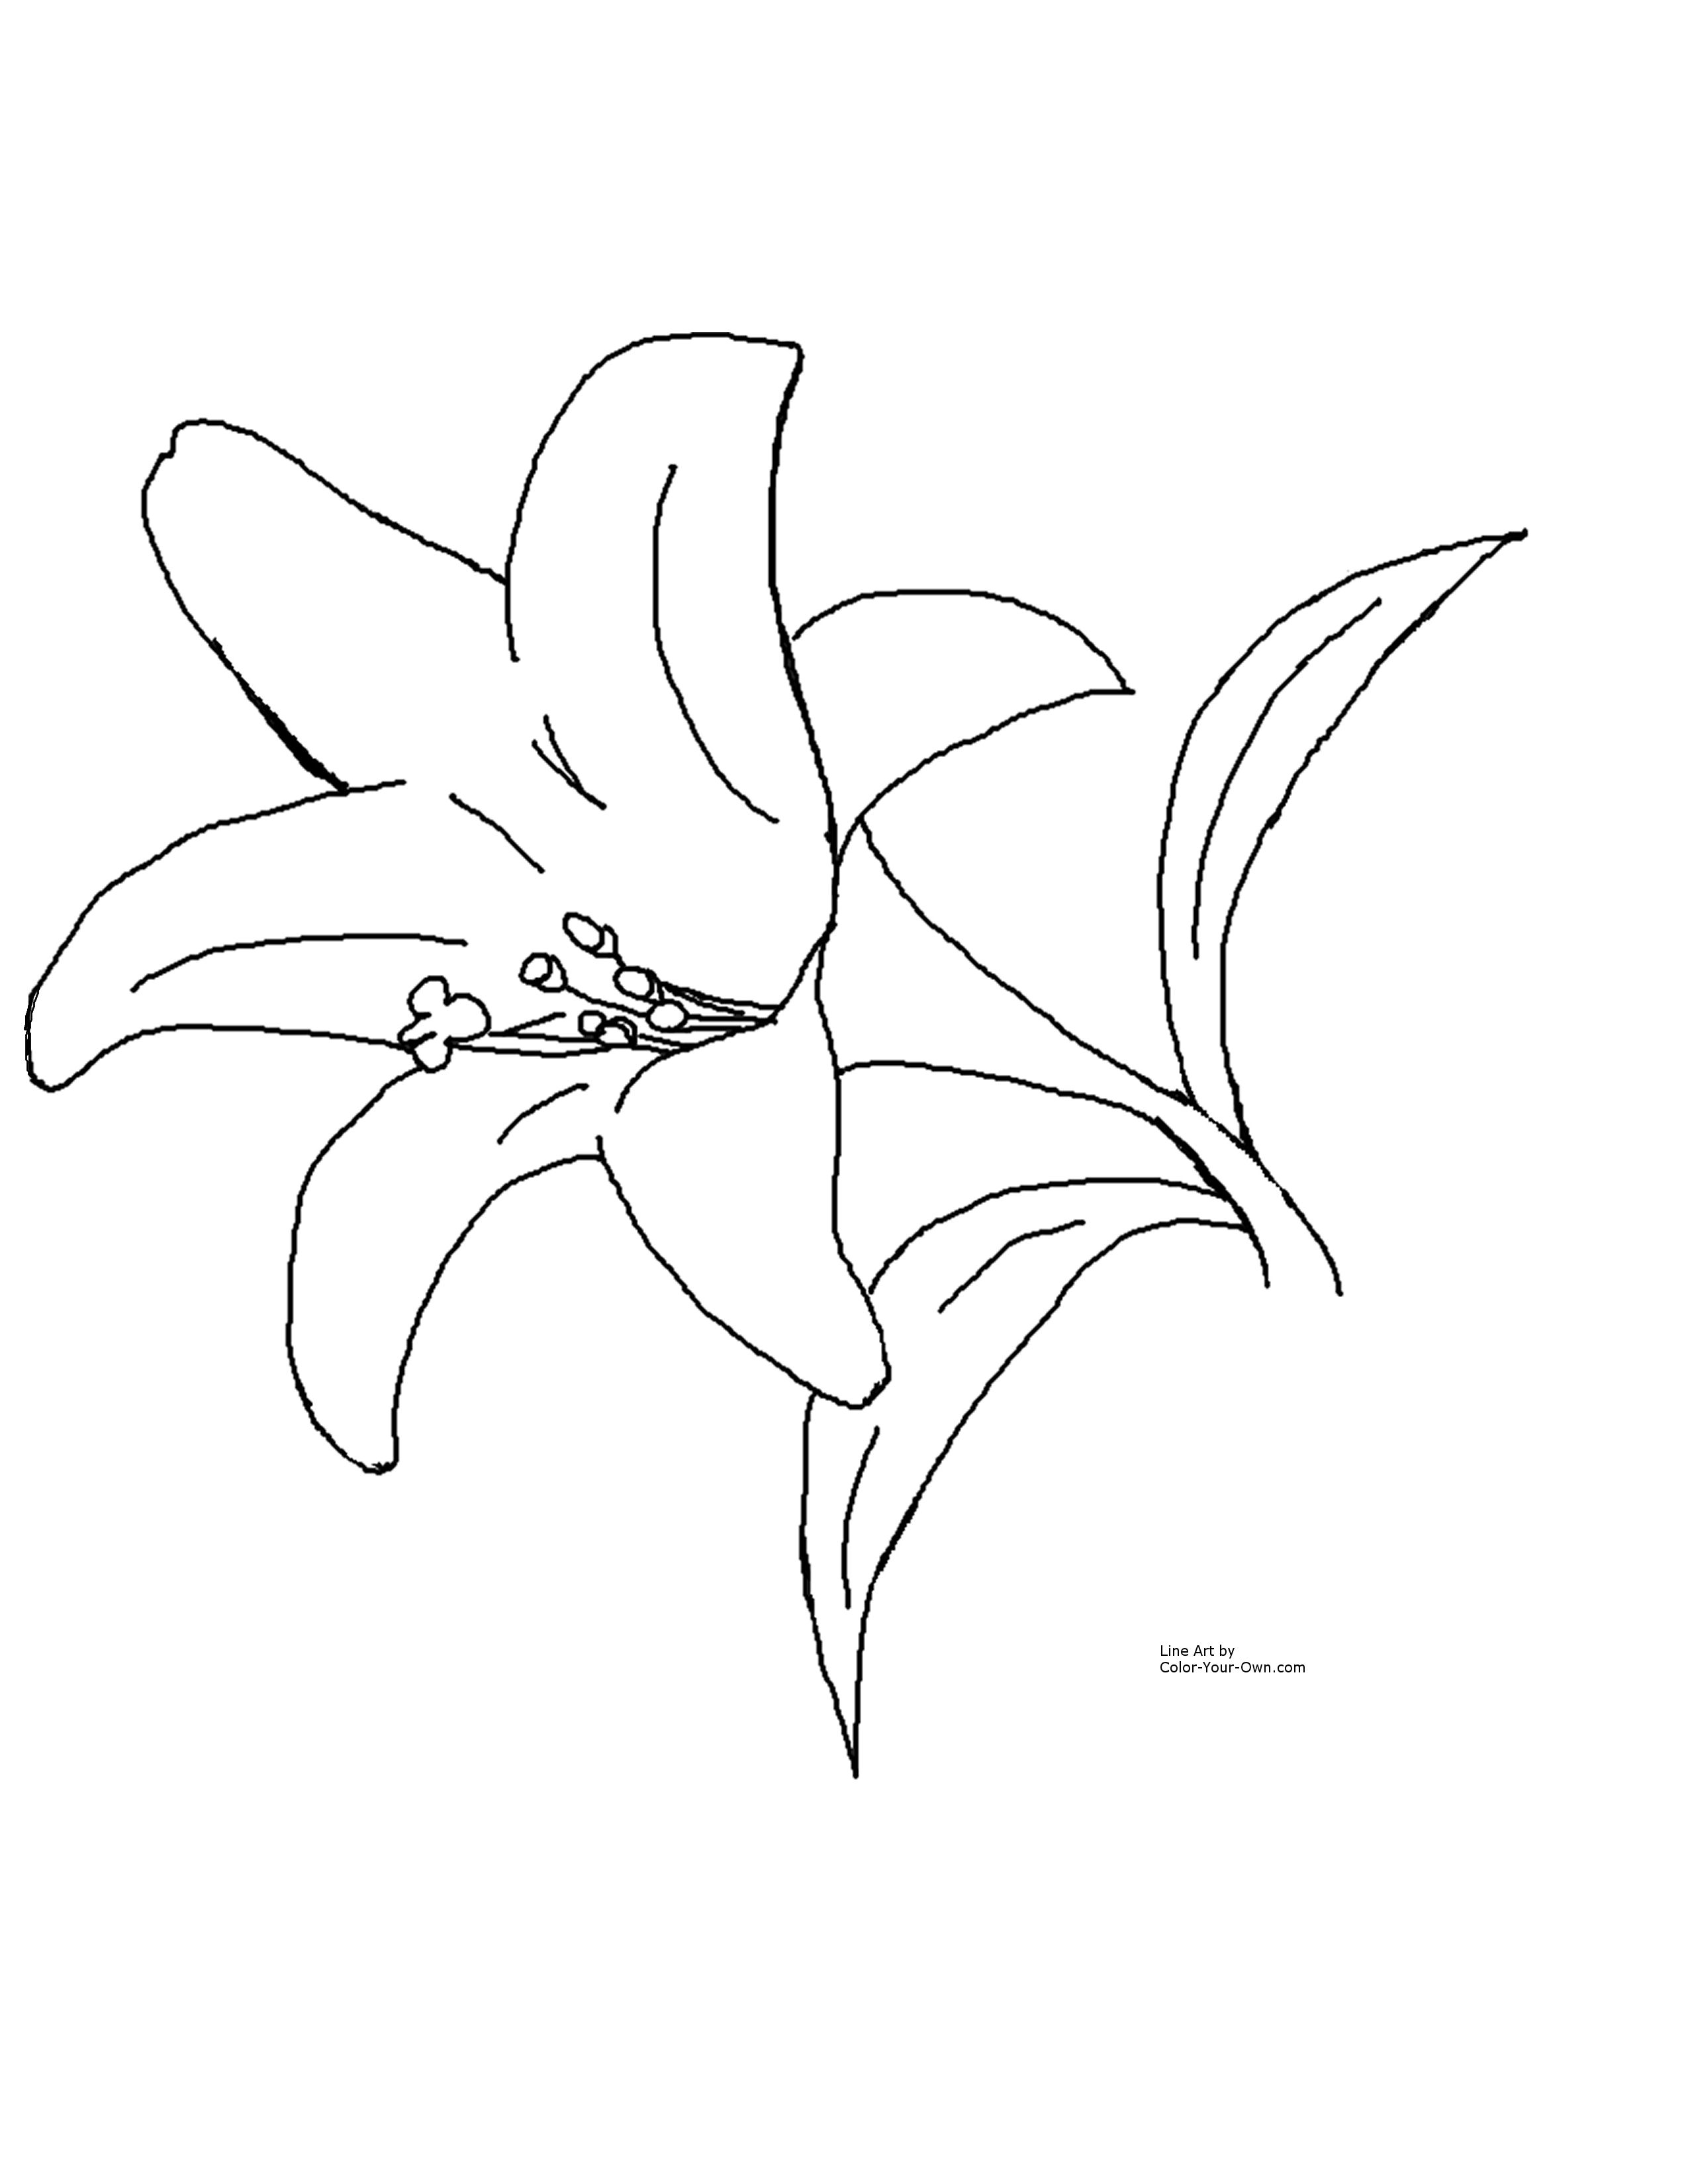 lily flower coloring pages lily flower coloring pages download and print lily flower lily coloring pages flower 1 1